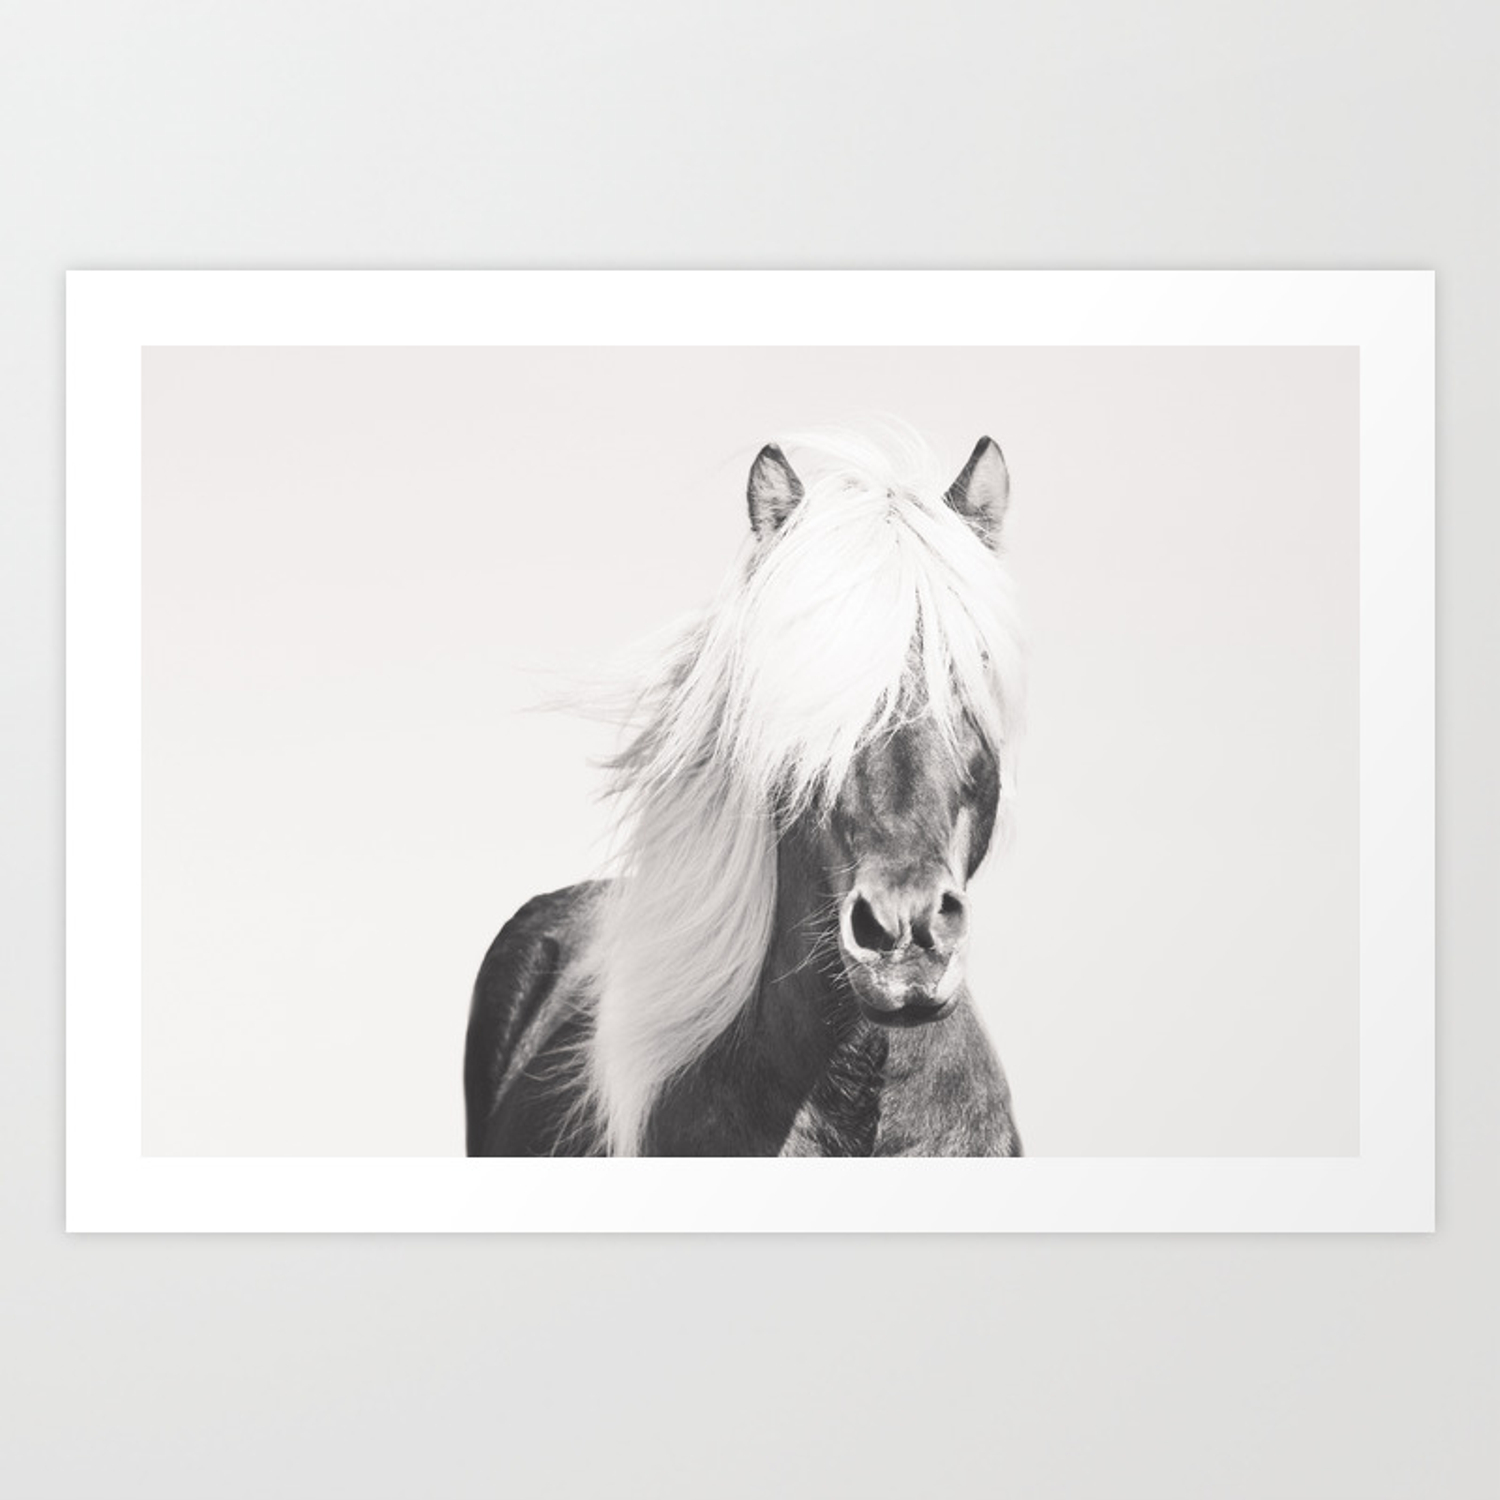 Bw Horse Horse Art Black And White Nordic Horse Horse Print Boho Decor Horse Photo Art Print By Northernedge Society6